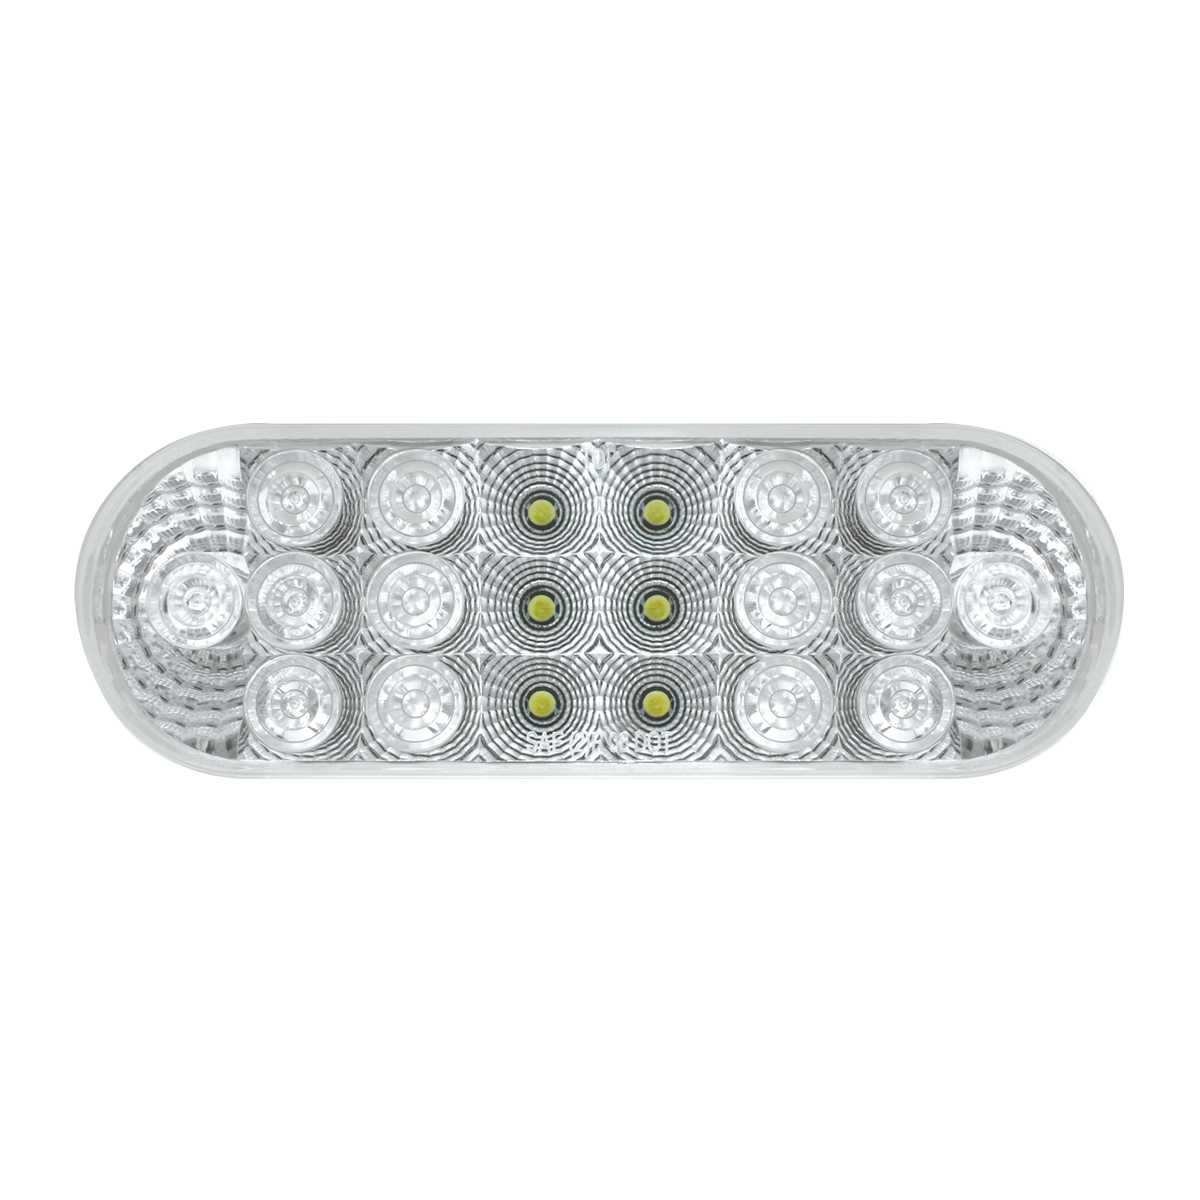 77052 Oval Spyder LED Light in White/Clear